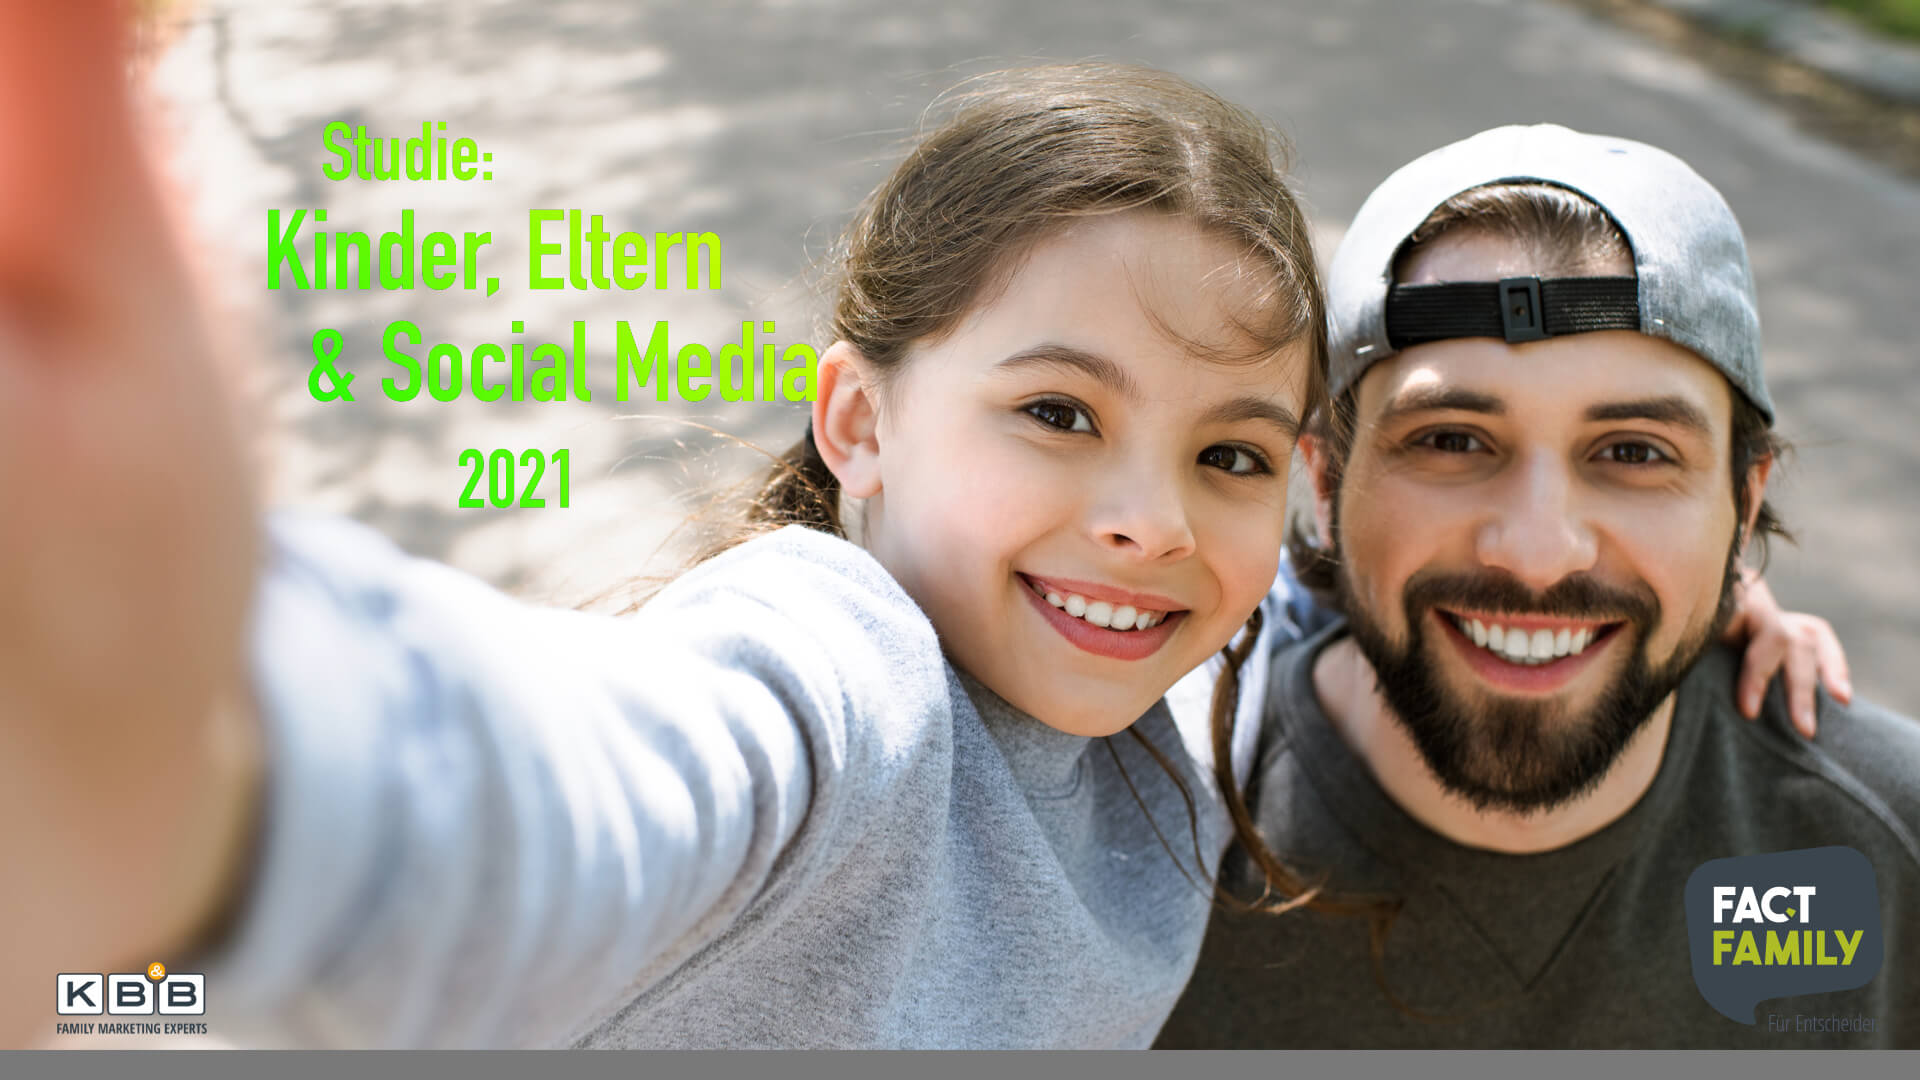 Studie: Kinder, Eltern & Social Media 2021